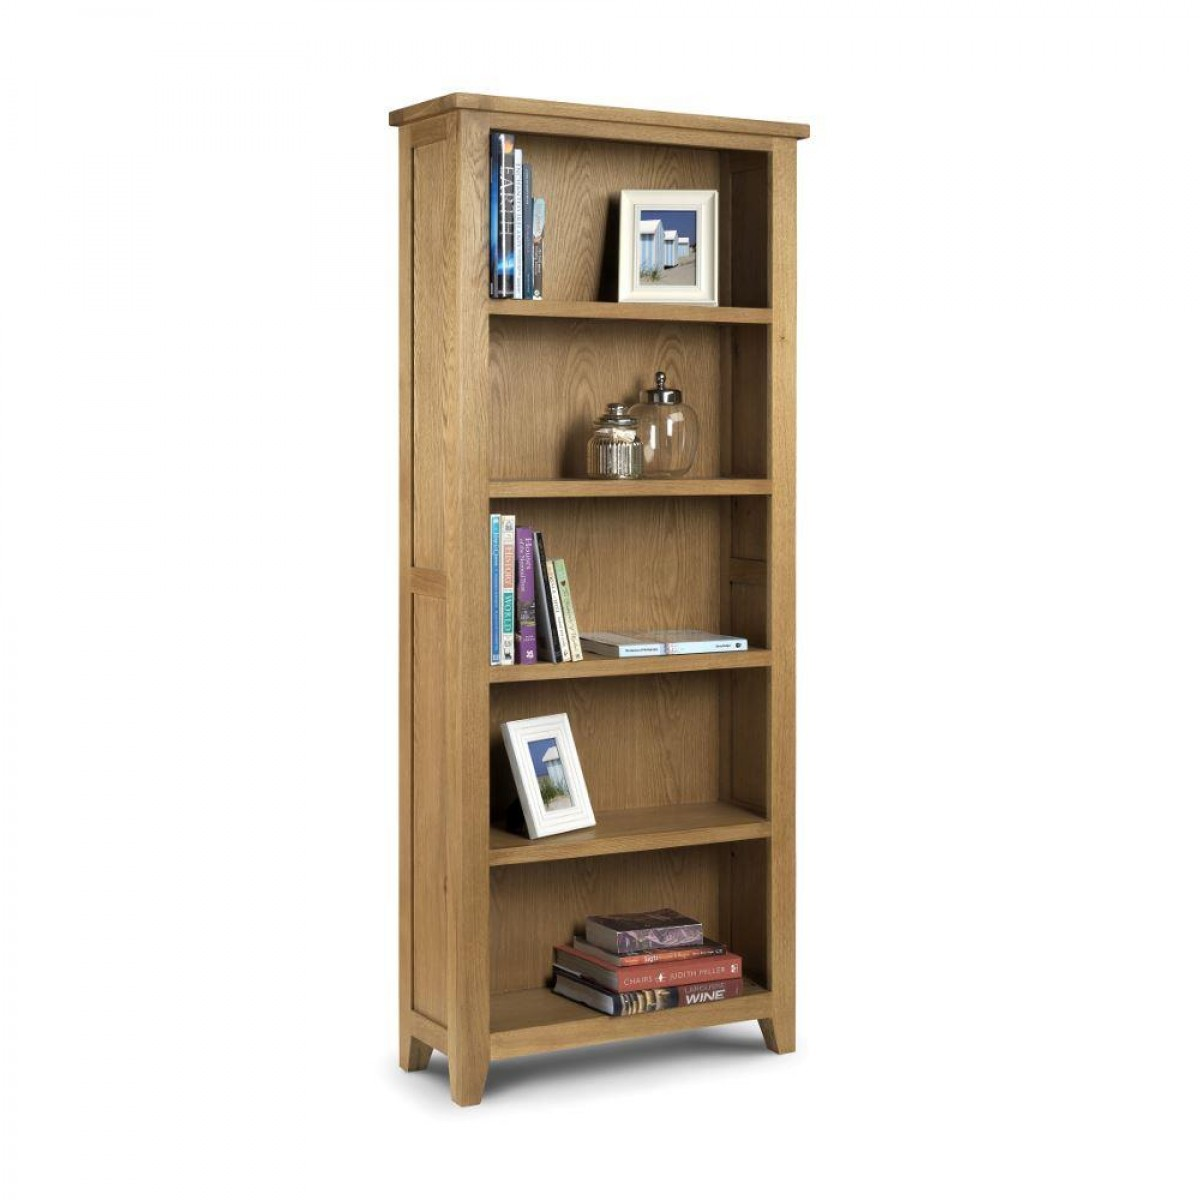 Astoria Oak Tall Bookcase